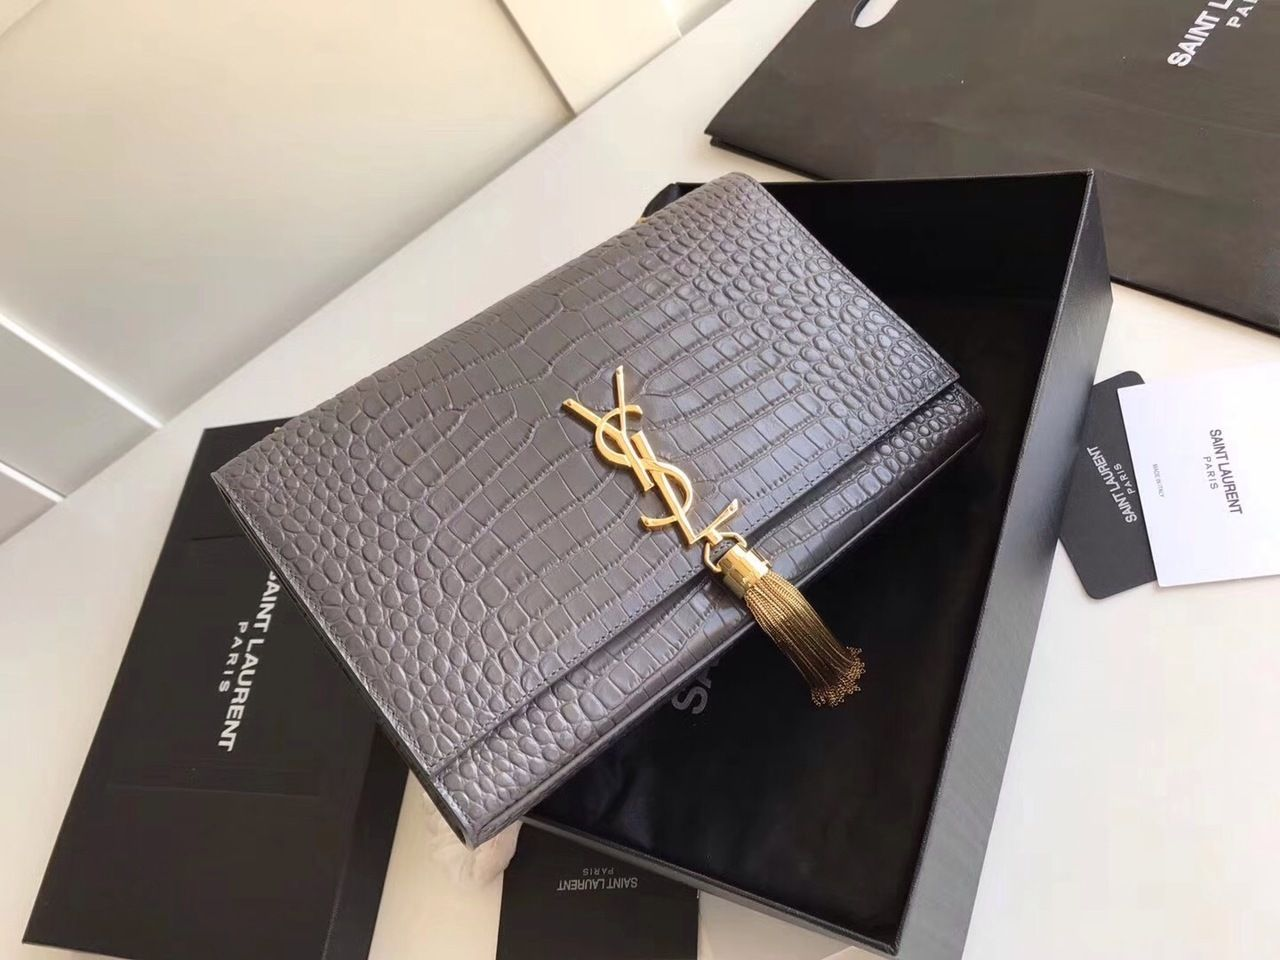 Saint Laurent CLASSIC MEDIUM KATE TASSEL SATCHEL IN GREY CROCODILE EMBOSSED  SHINY LEATHER WITH GOLD HARDWARE - Bella Vita Moda #ysl bag #ysllover ... 2ae50ceaa51a5